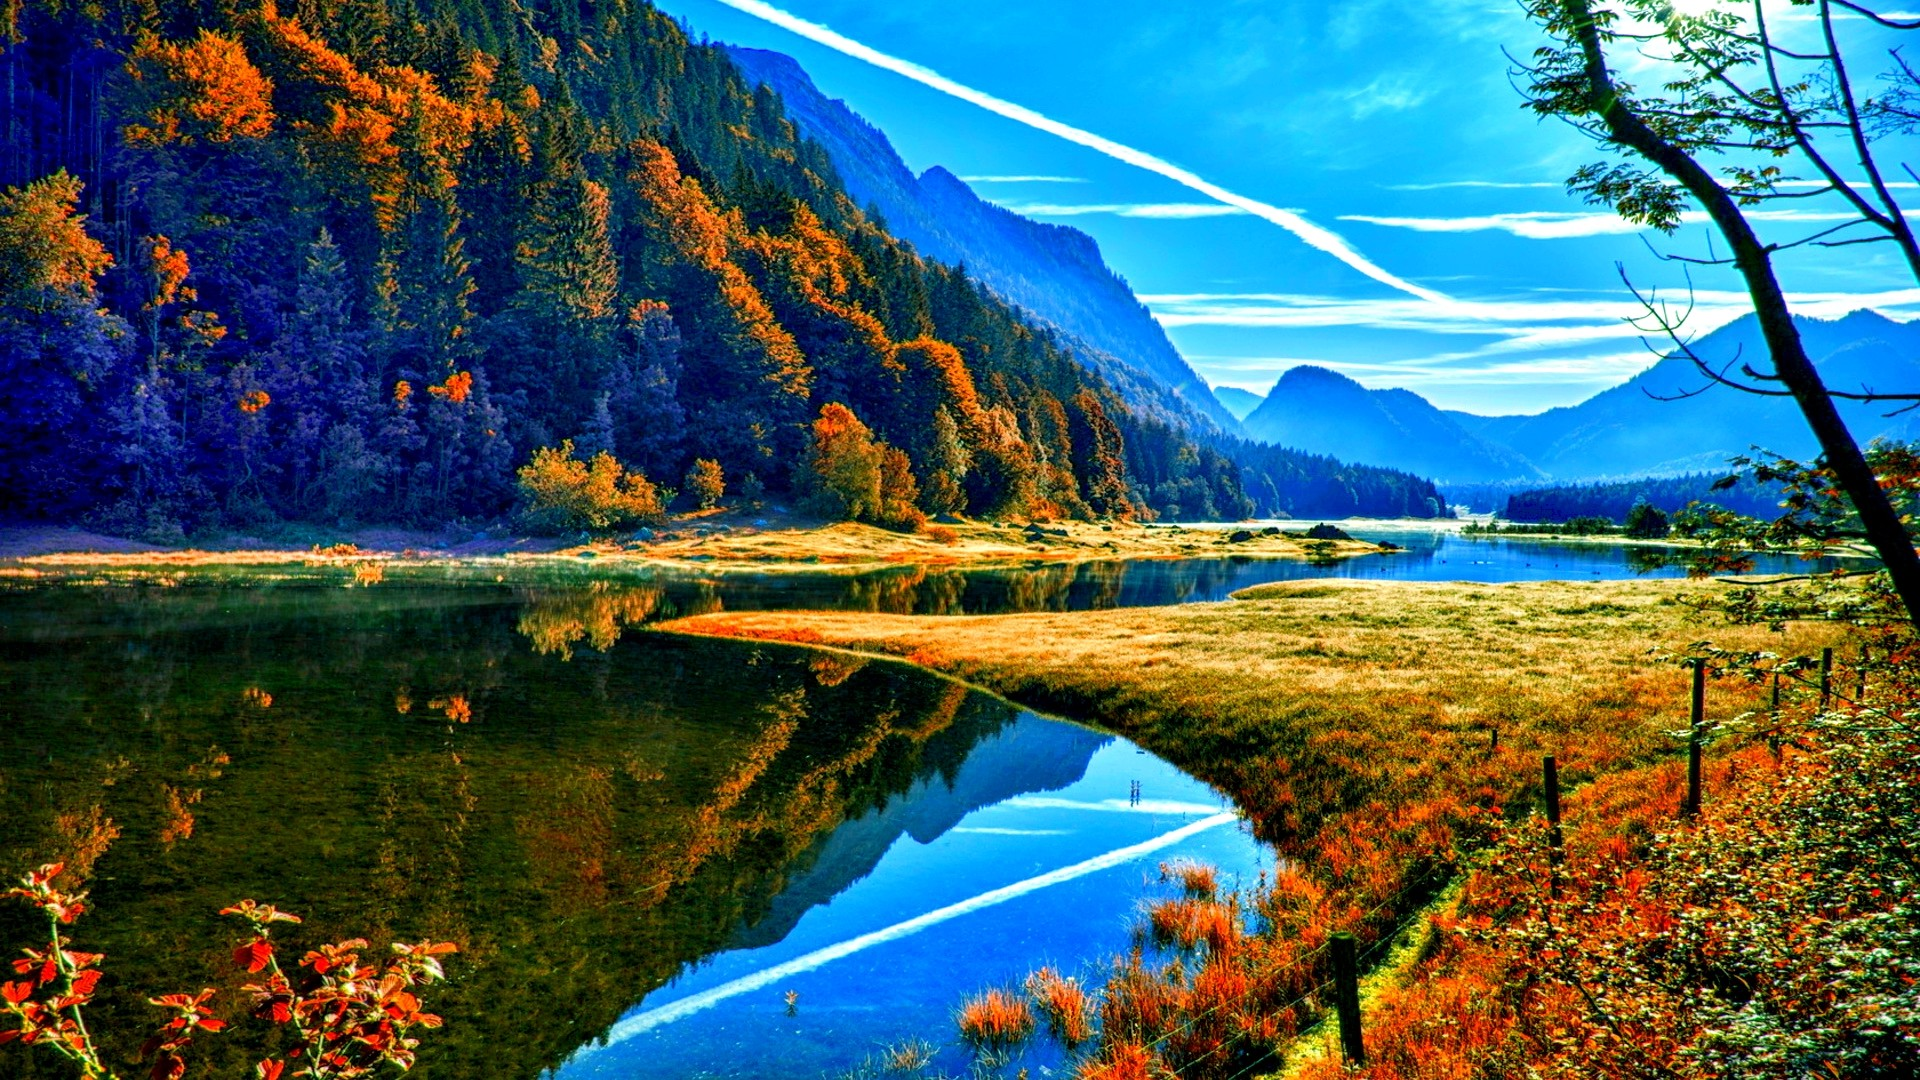 Nature wallpaper 1920x1080 74 images - Hd wallpapers 1920x1080 nature ...